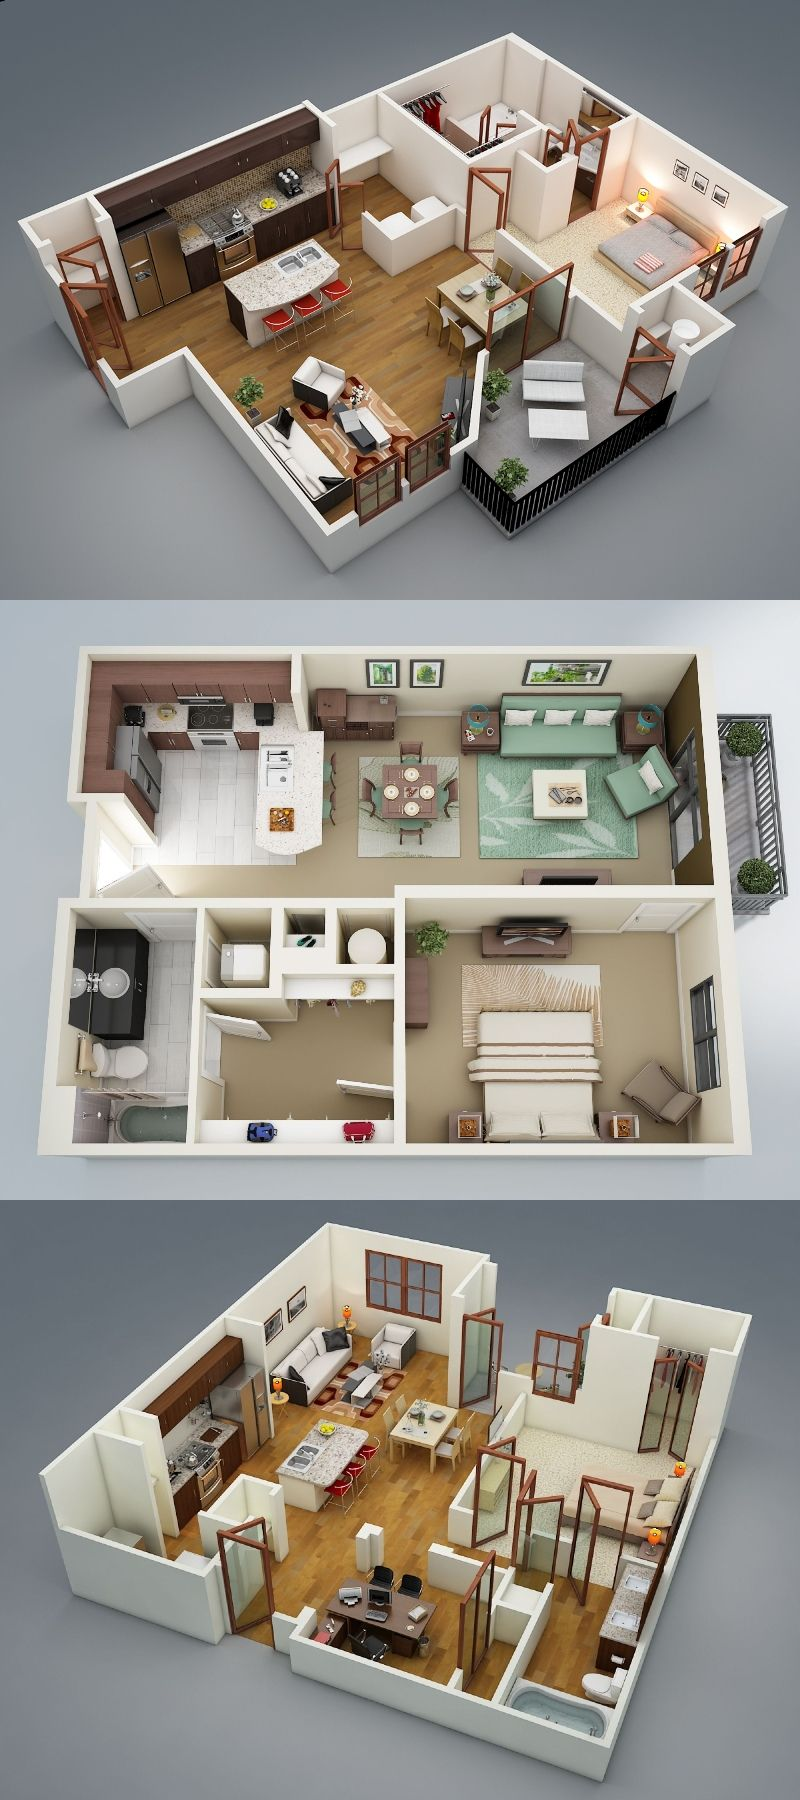 bedroom apartment house plans visualizer rishabh kushwaha sims also best plan images tiny home decor layouts rh pinterest